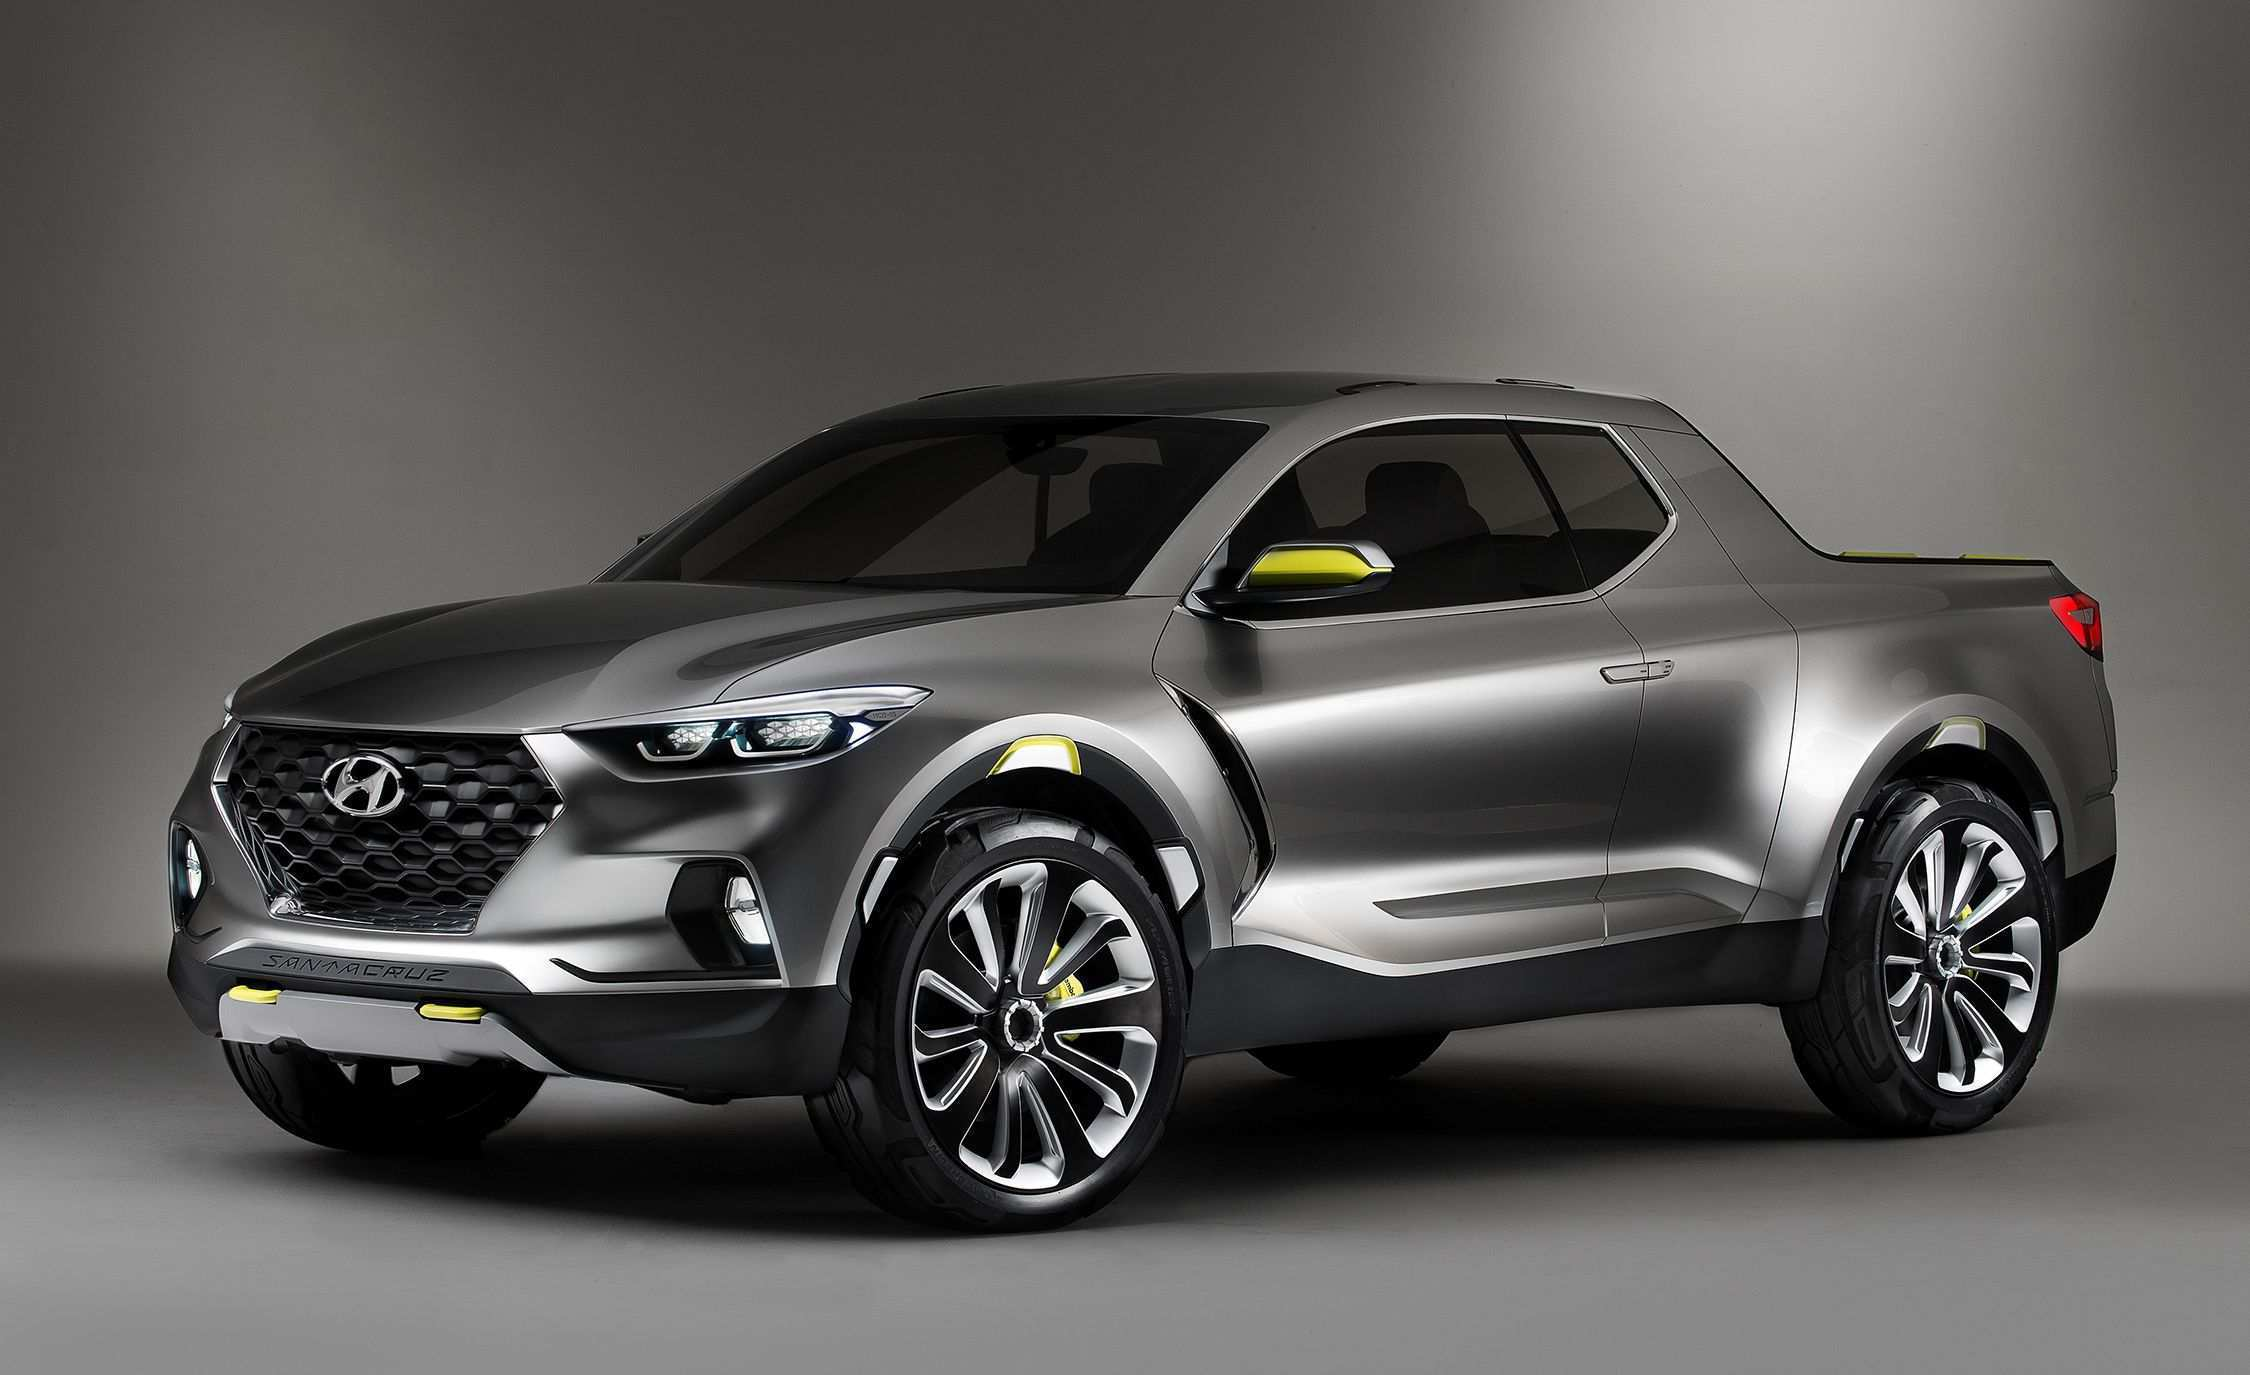 62 Gallery of 2020 Subaru Pickup Redesign and Concept for 2020 Subaru Pickup